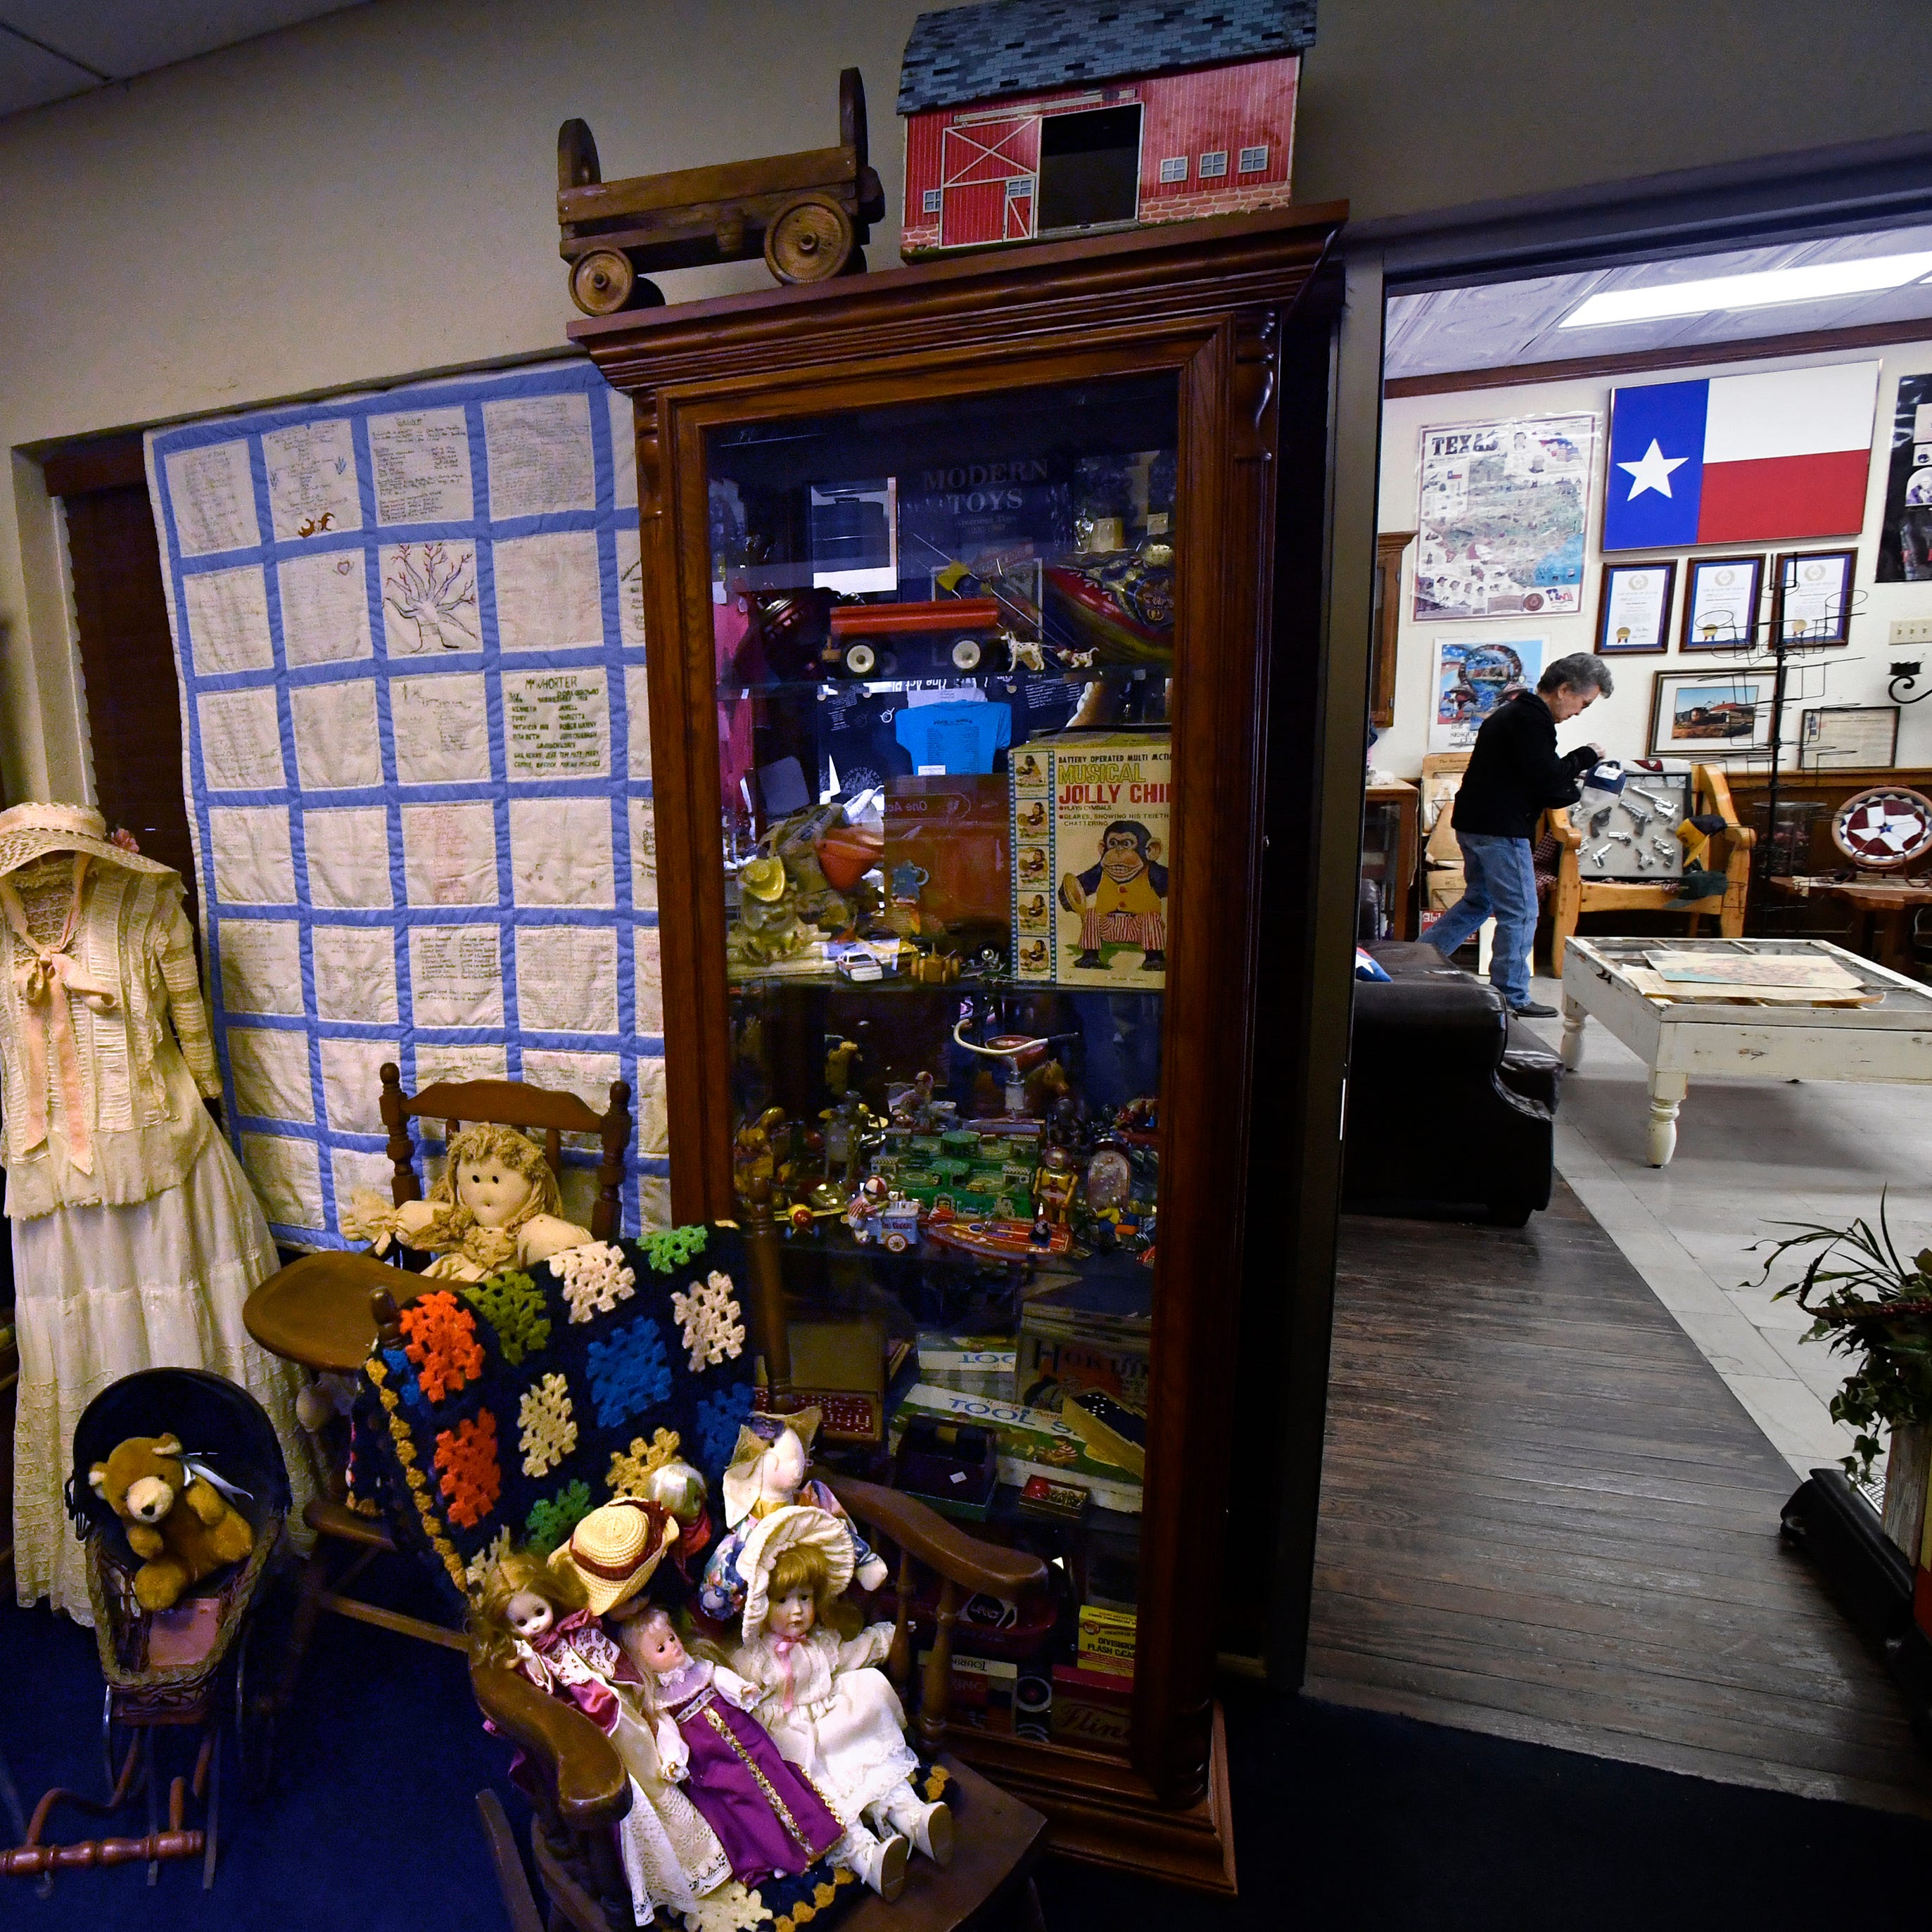 Giving back with a museum for Haskell County